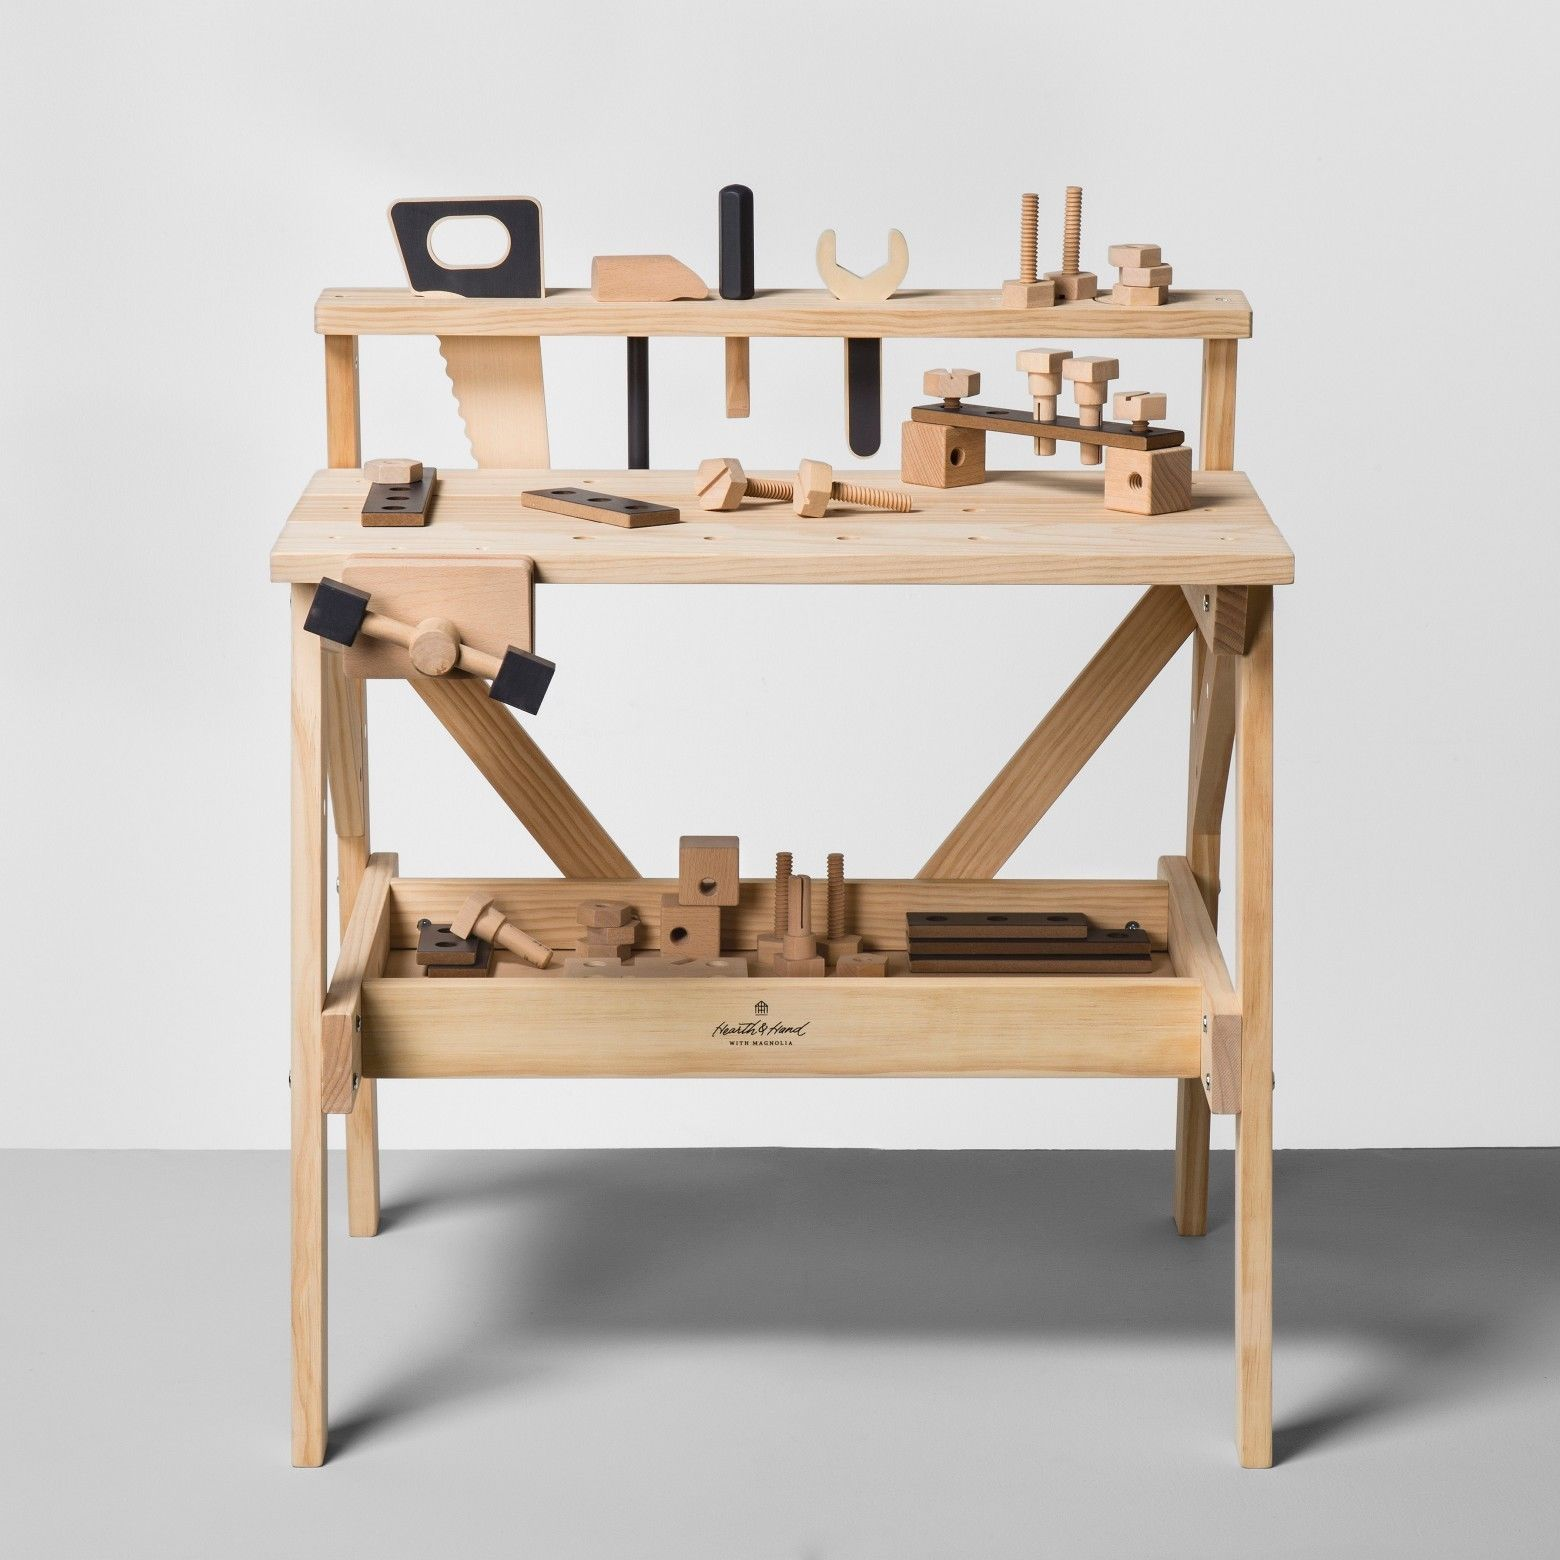 Wooden Toy Tool Bench 38pc Hearth Hand With Magnolia Ebay Tool Bench Hearth Hand With Magnolia Wooden Toys